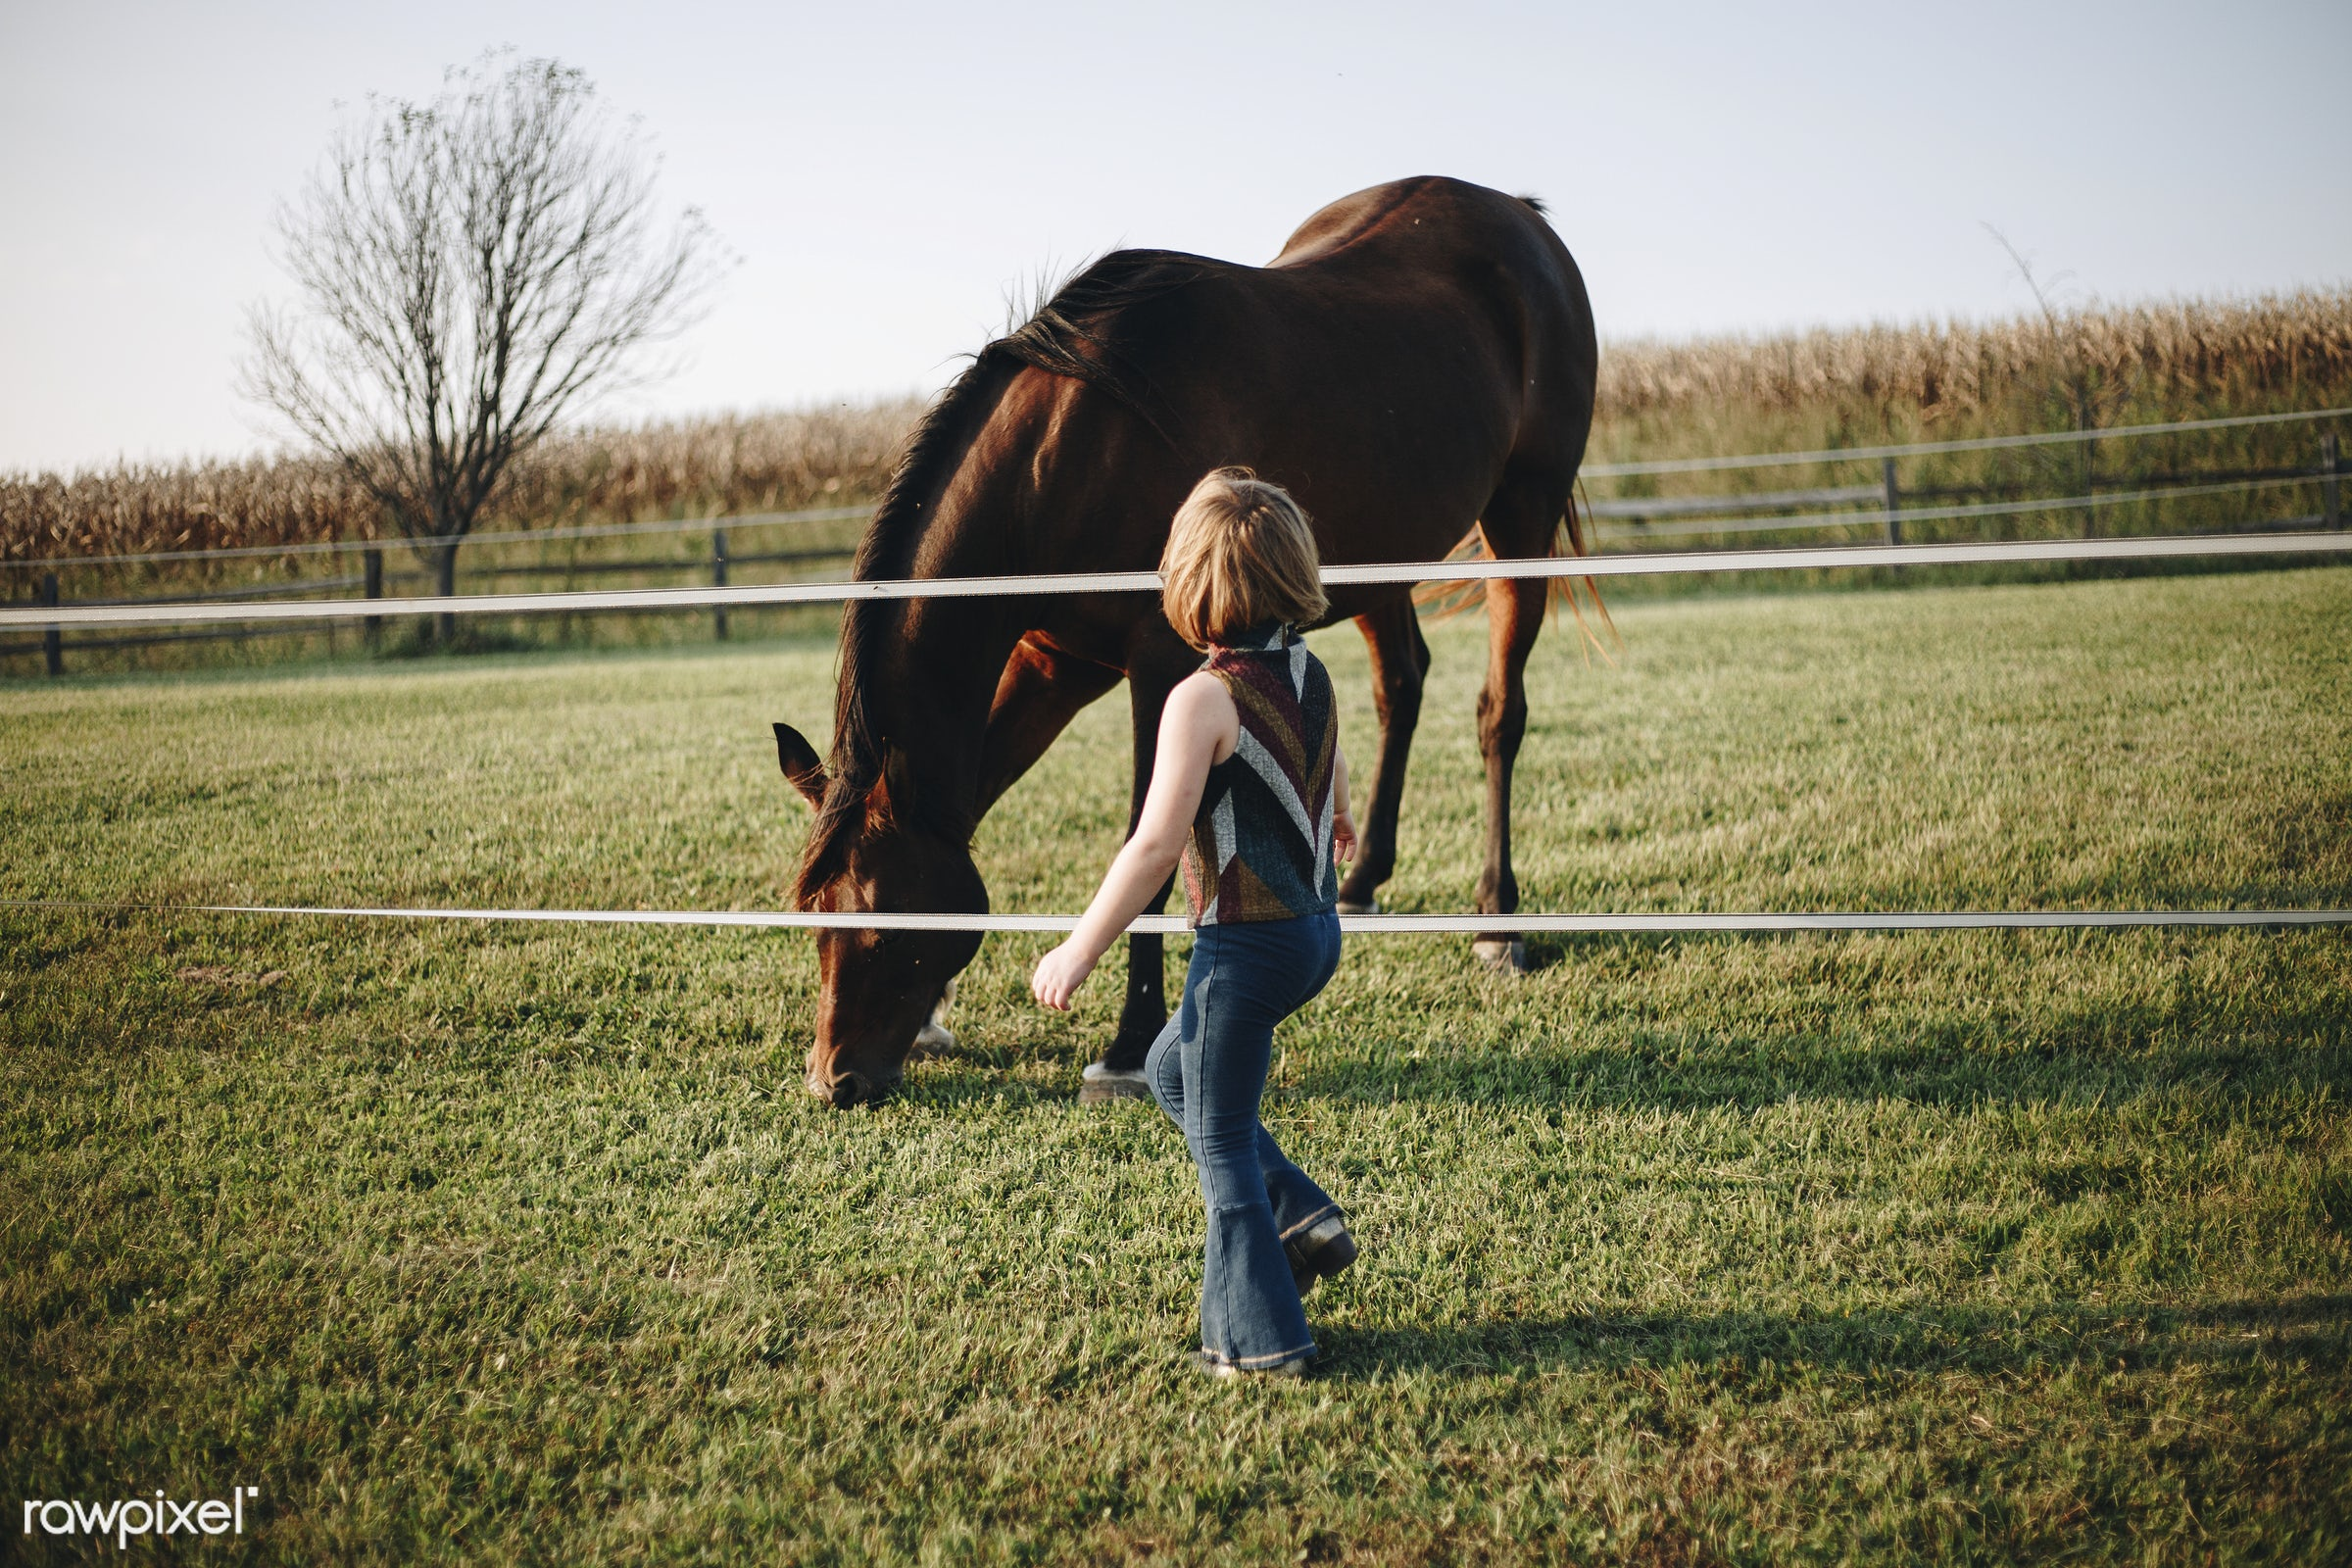 Little girl playing with a horse - animal, kid, activity, america, american, canada, canadian, child, countryside, european...